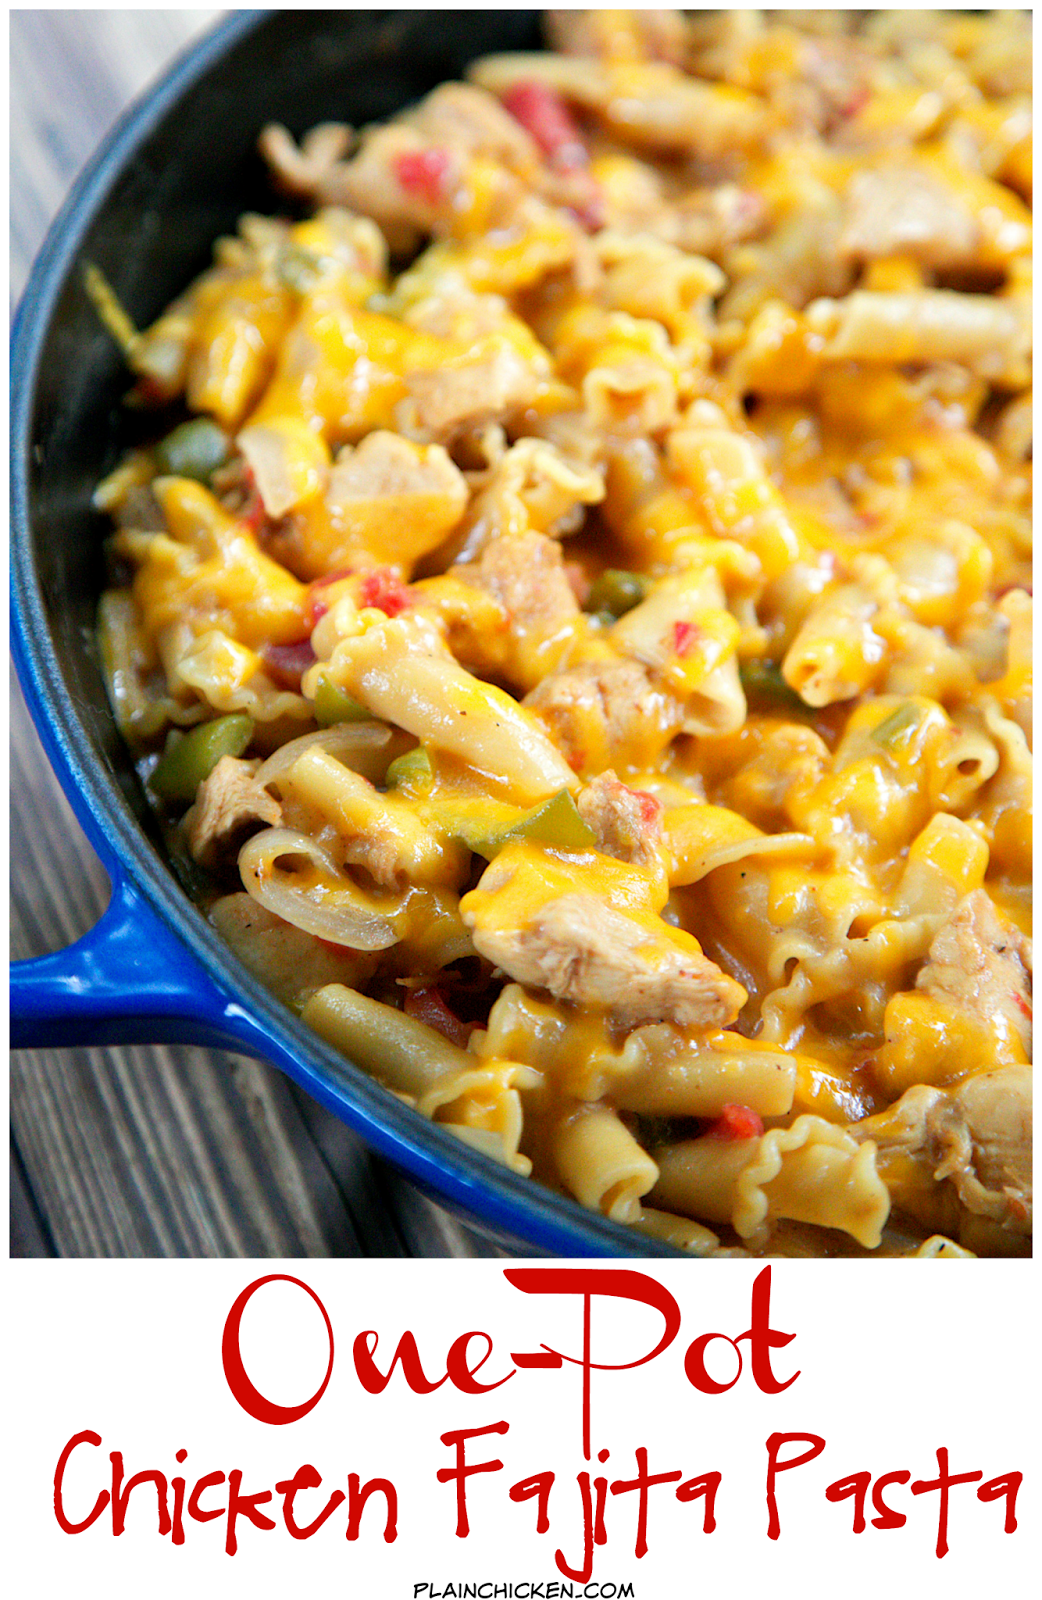 One-Pot Chicken Fajita Pasta Recipe - everything cooks in the same pan, even the pasta! Ready in under 20 minutes!! Chicken, onions, peppers, Rotel, fajita seasoning, chicken broth, cream, pasta, sour cream and cheese. Everyone gobbled this up! Quick, easy and delicious Mexican meal!